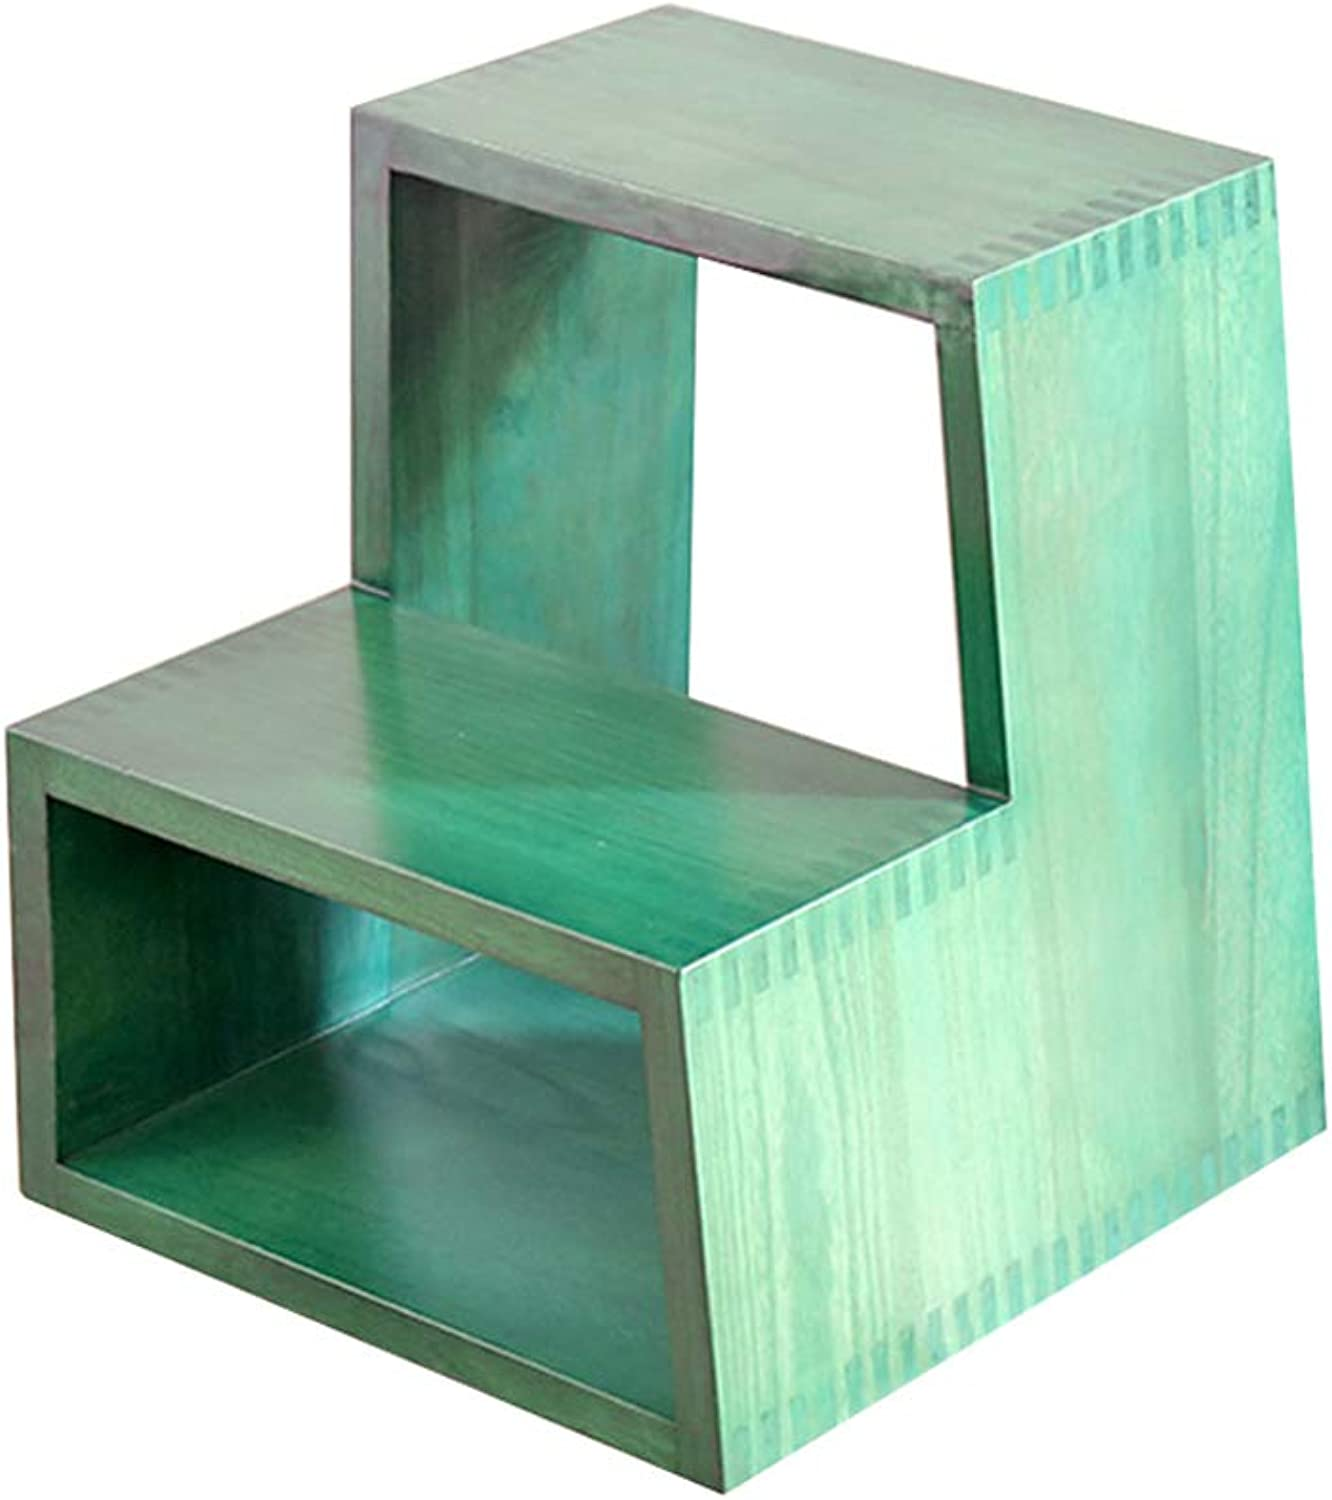 GSHWJS 2-Step Solid Wood Step Stool Multi-Function shoes Bench 150kg Capacity (Green) Step Stool